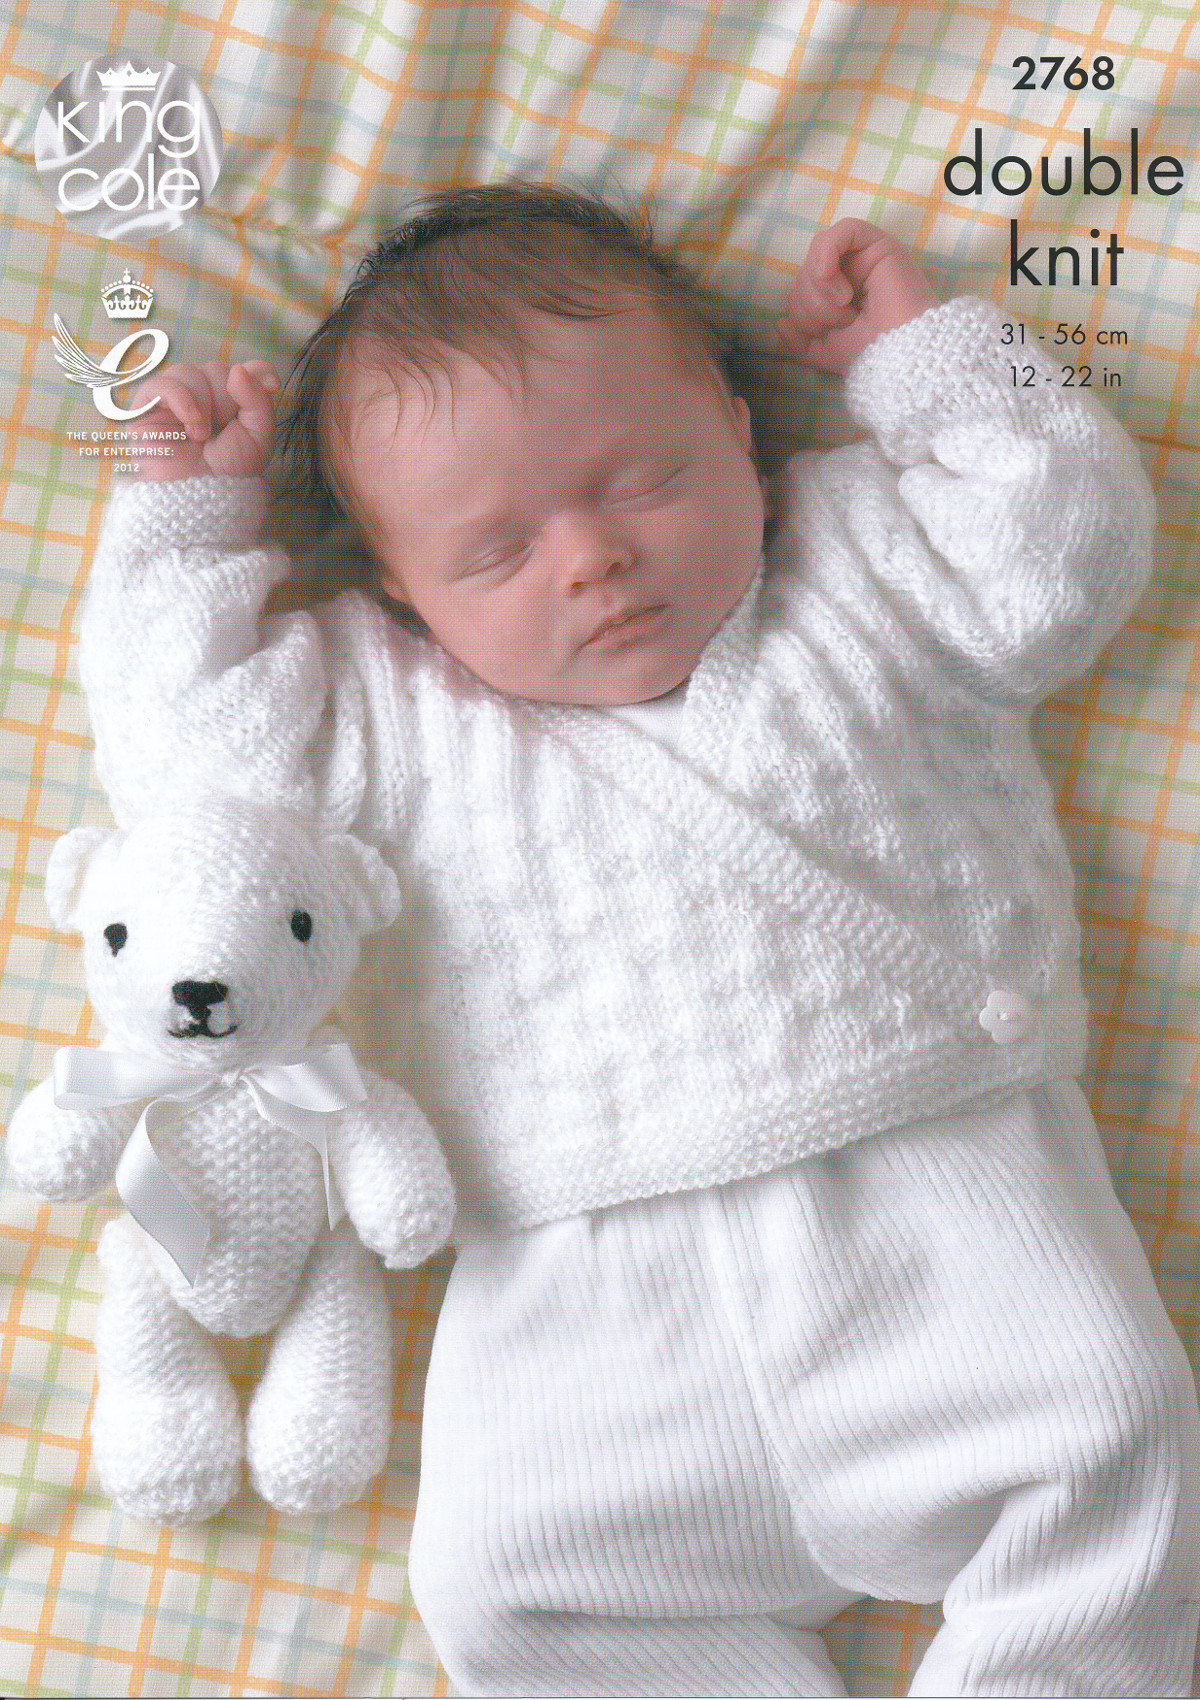 Knitting Patterns For Babies Double Knitting : King Cole Double Knitting Pattern Baby Cardigan Sweater Teddy Bear DK Wool 27...